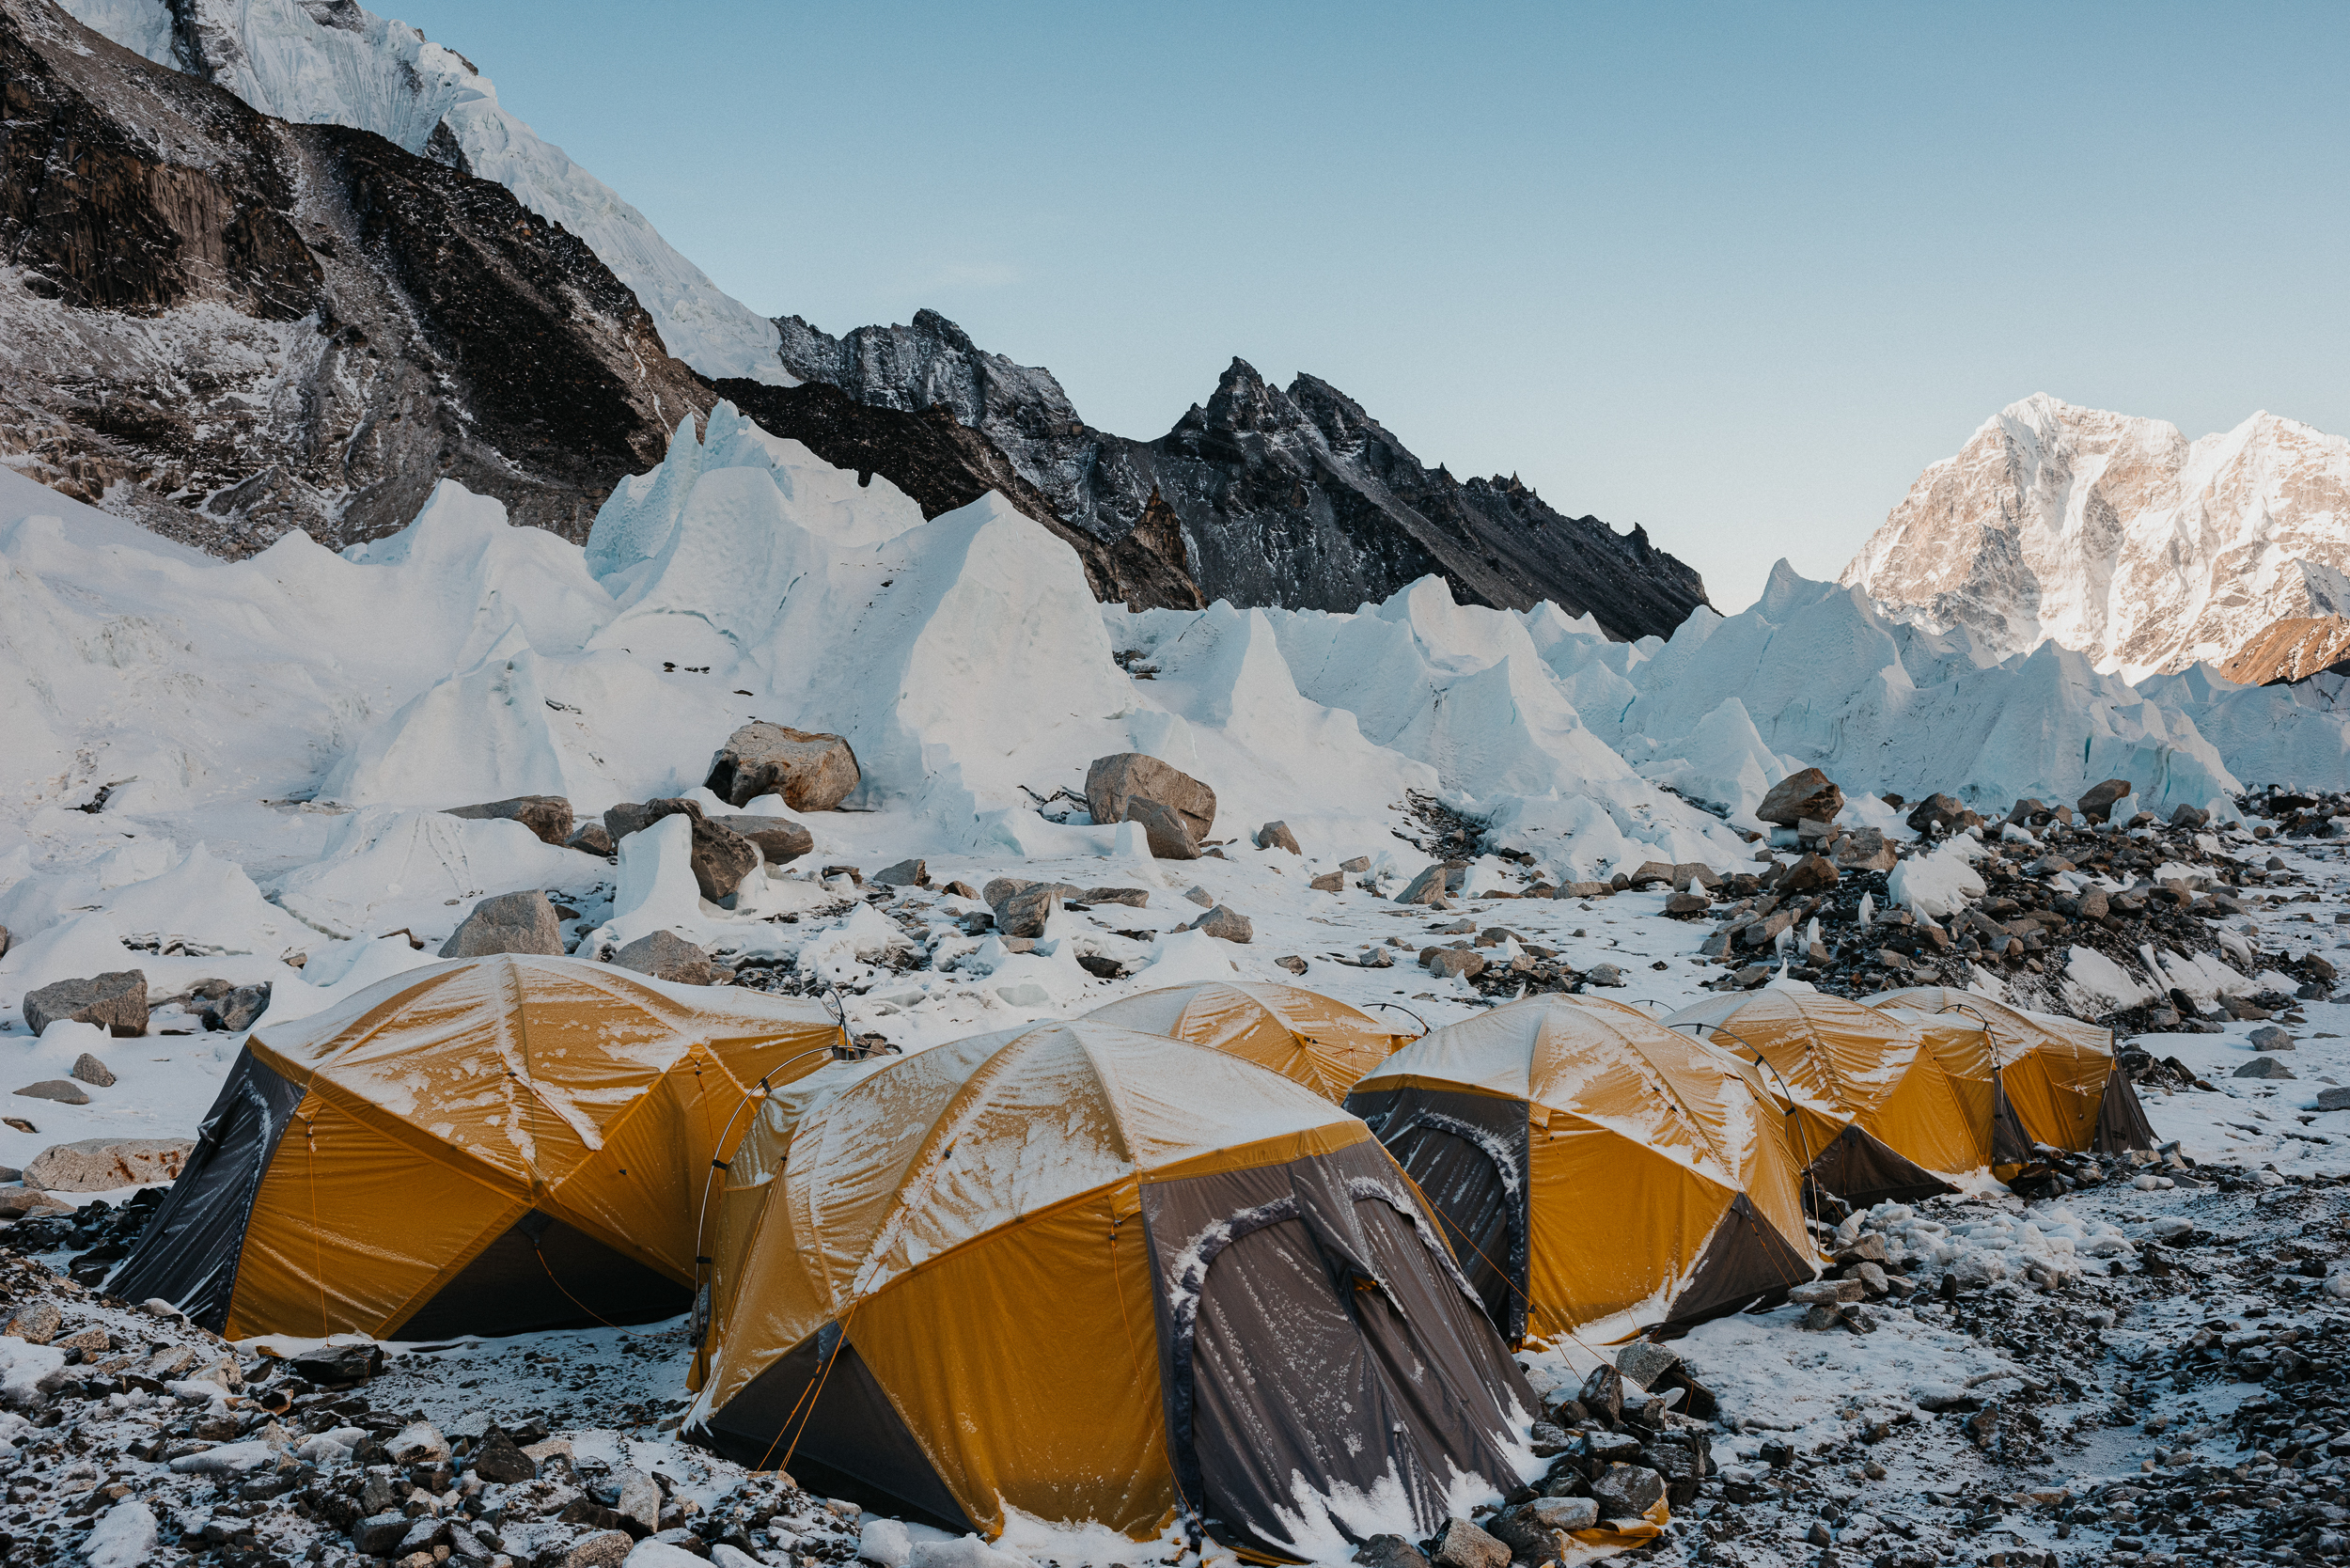 Nepal_EverestBaseCamp_2019_TaraShupe_Photography_DSC_4374.jpg